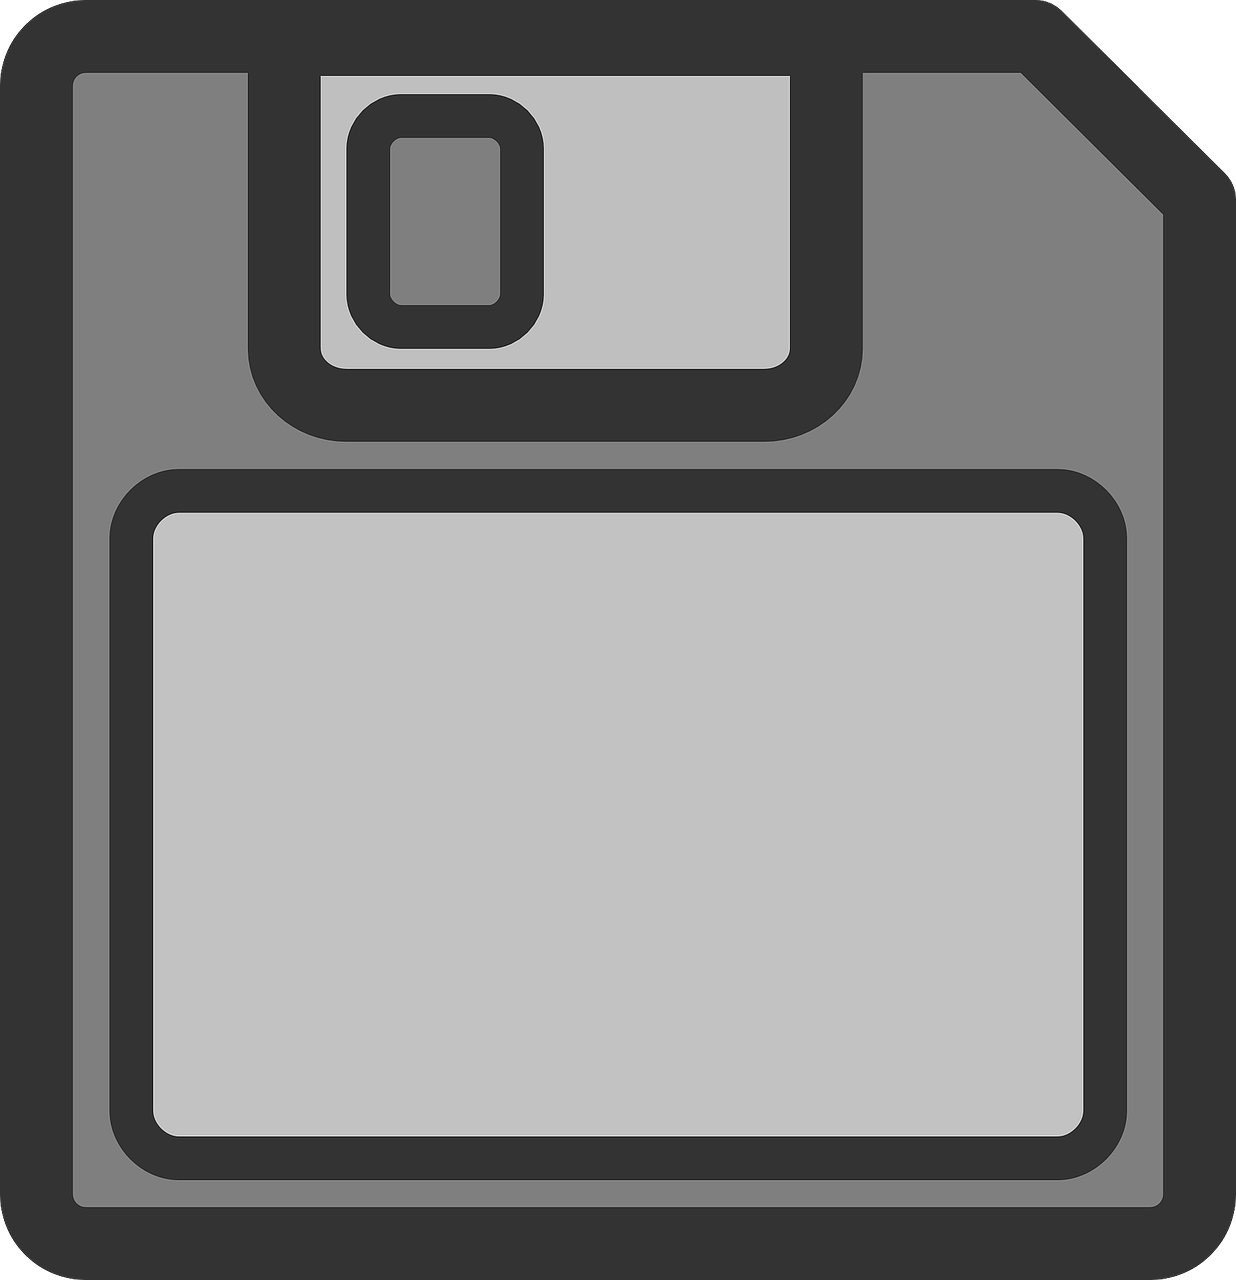 floppy disk save file free photo